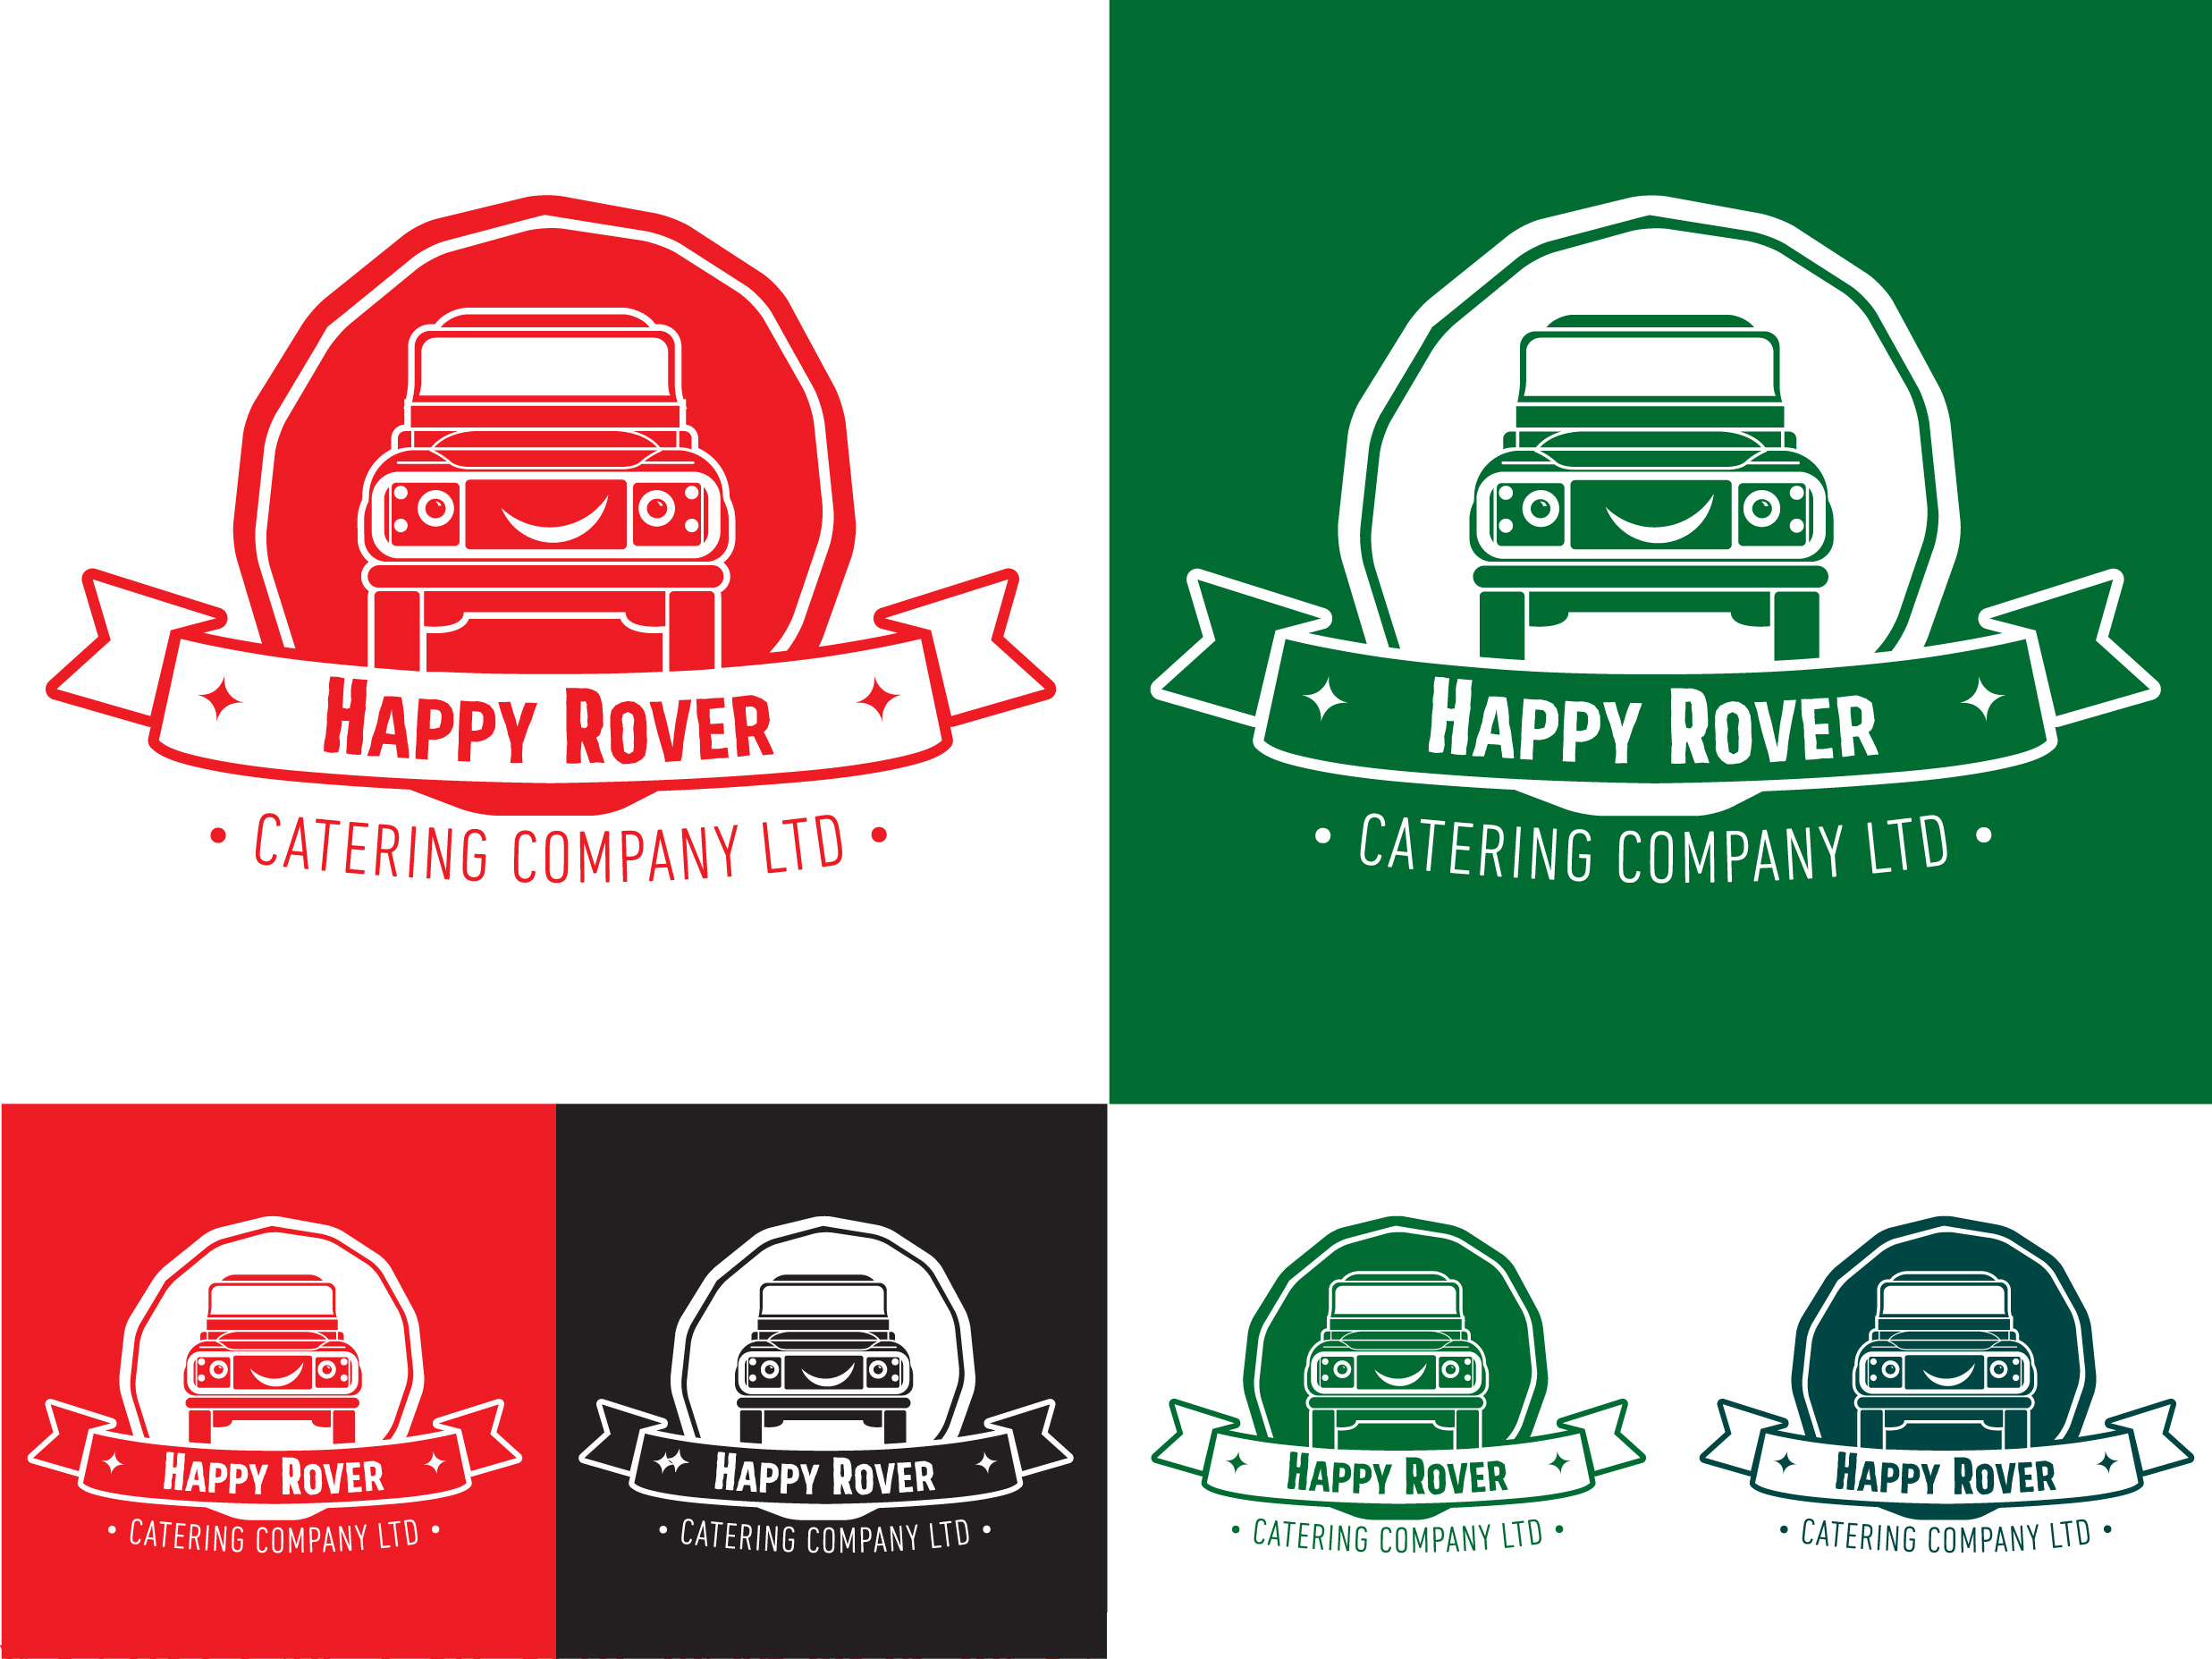 Happy Rover Pizza Logo Alternatives